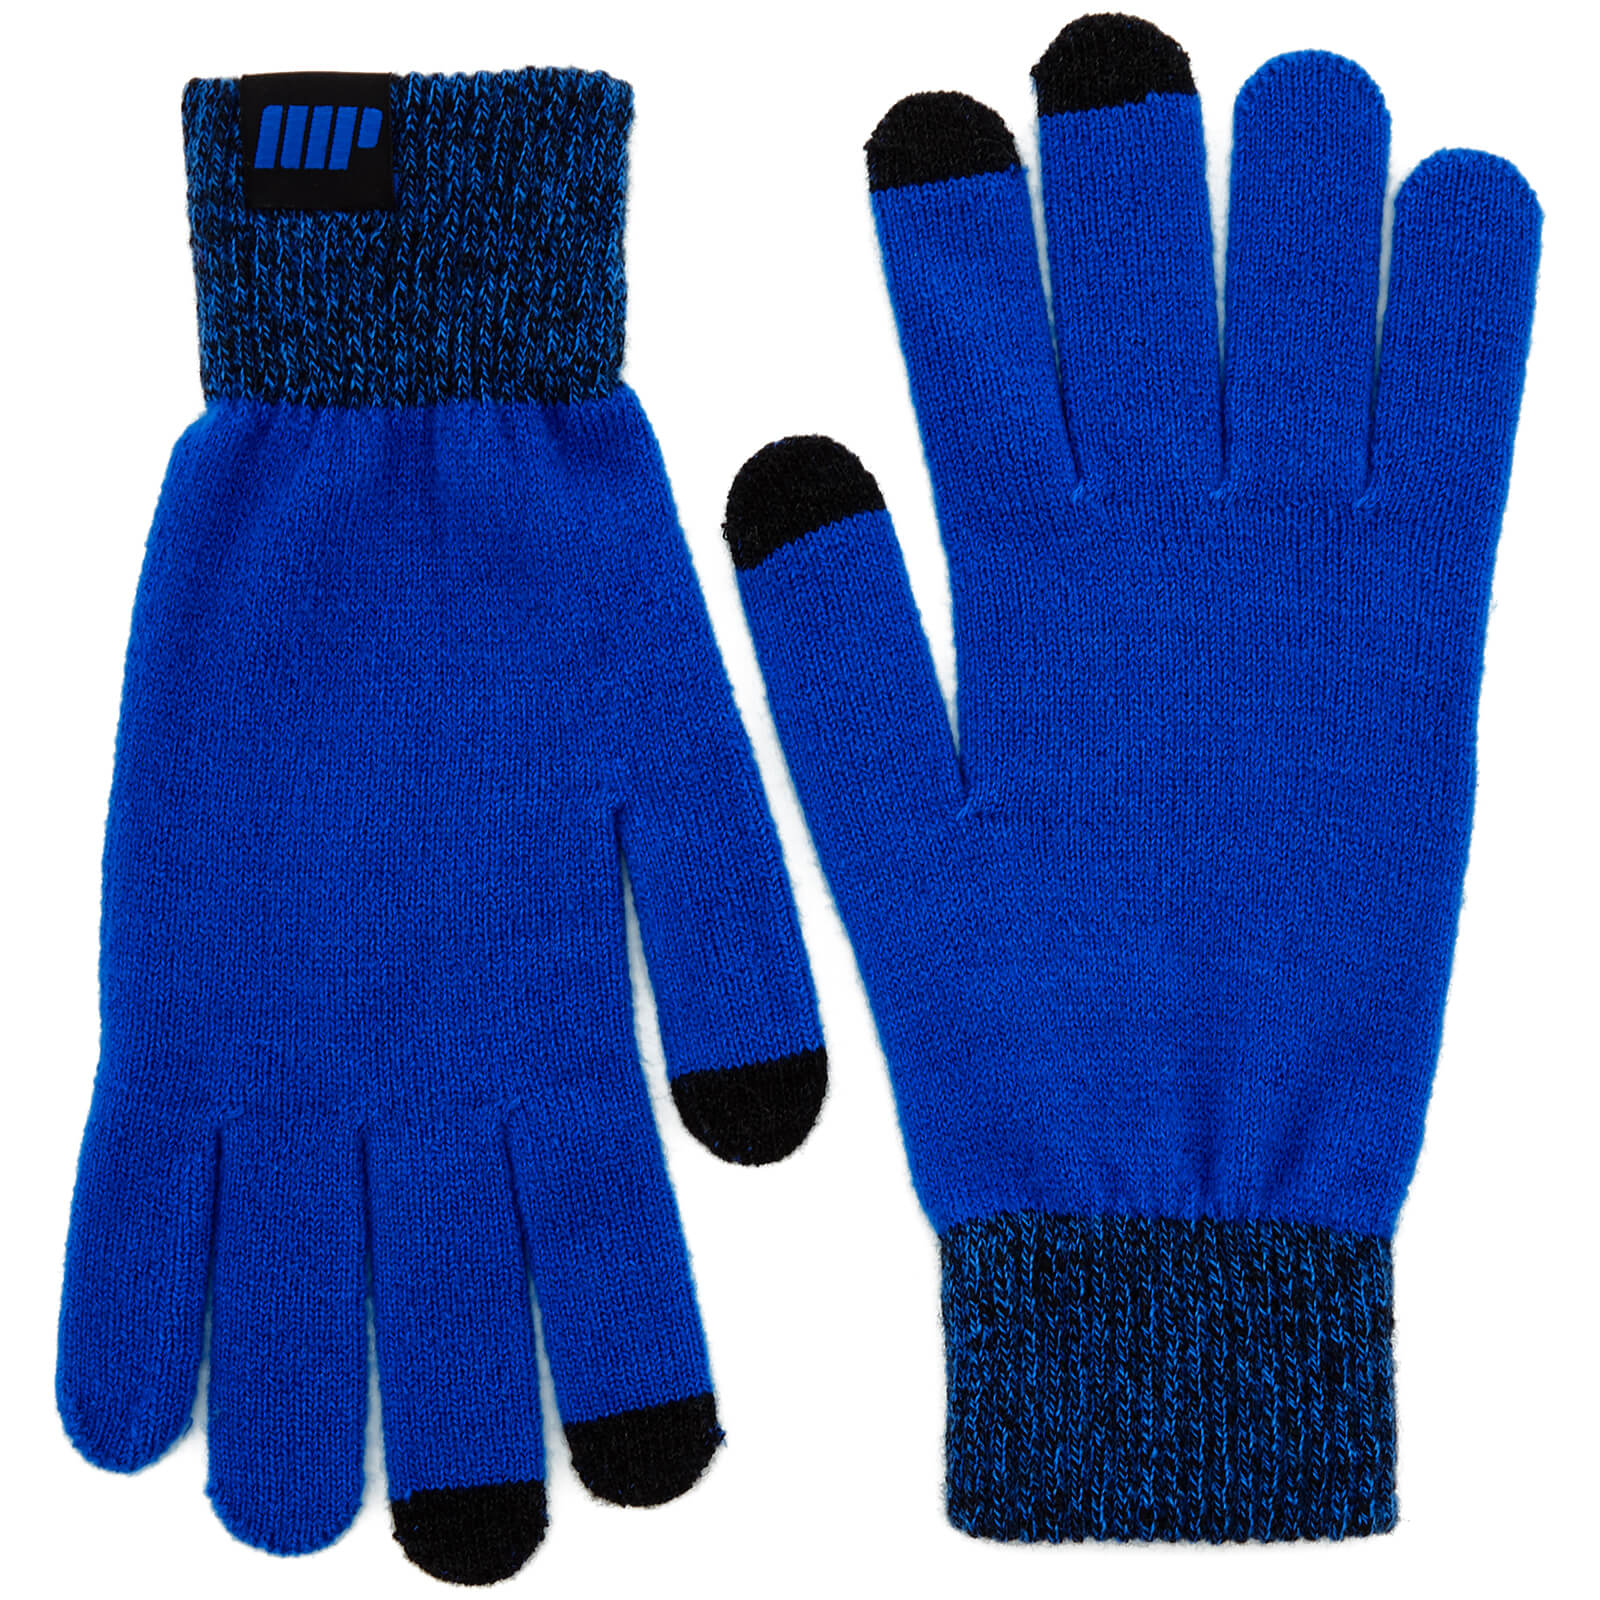 Myprotein Knitted Gloves - Blue - S/M